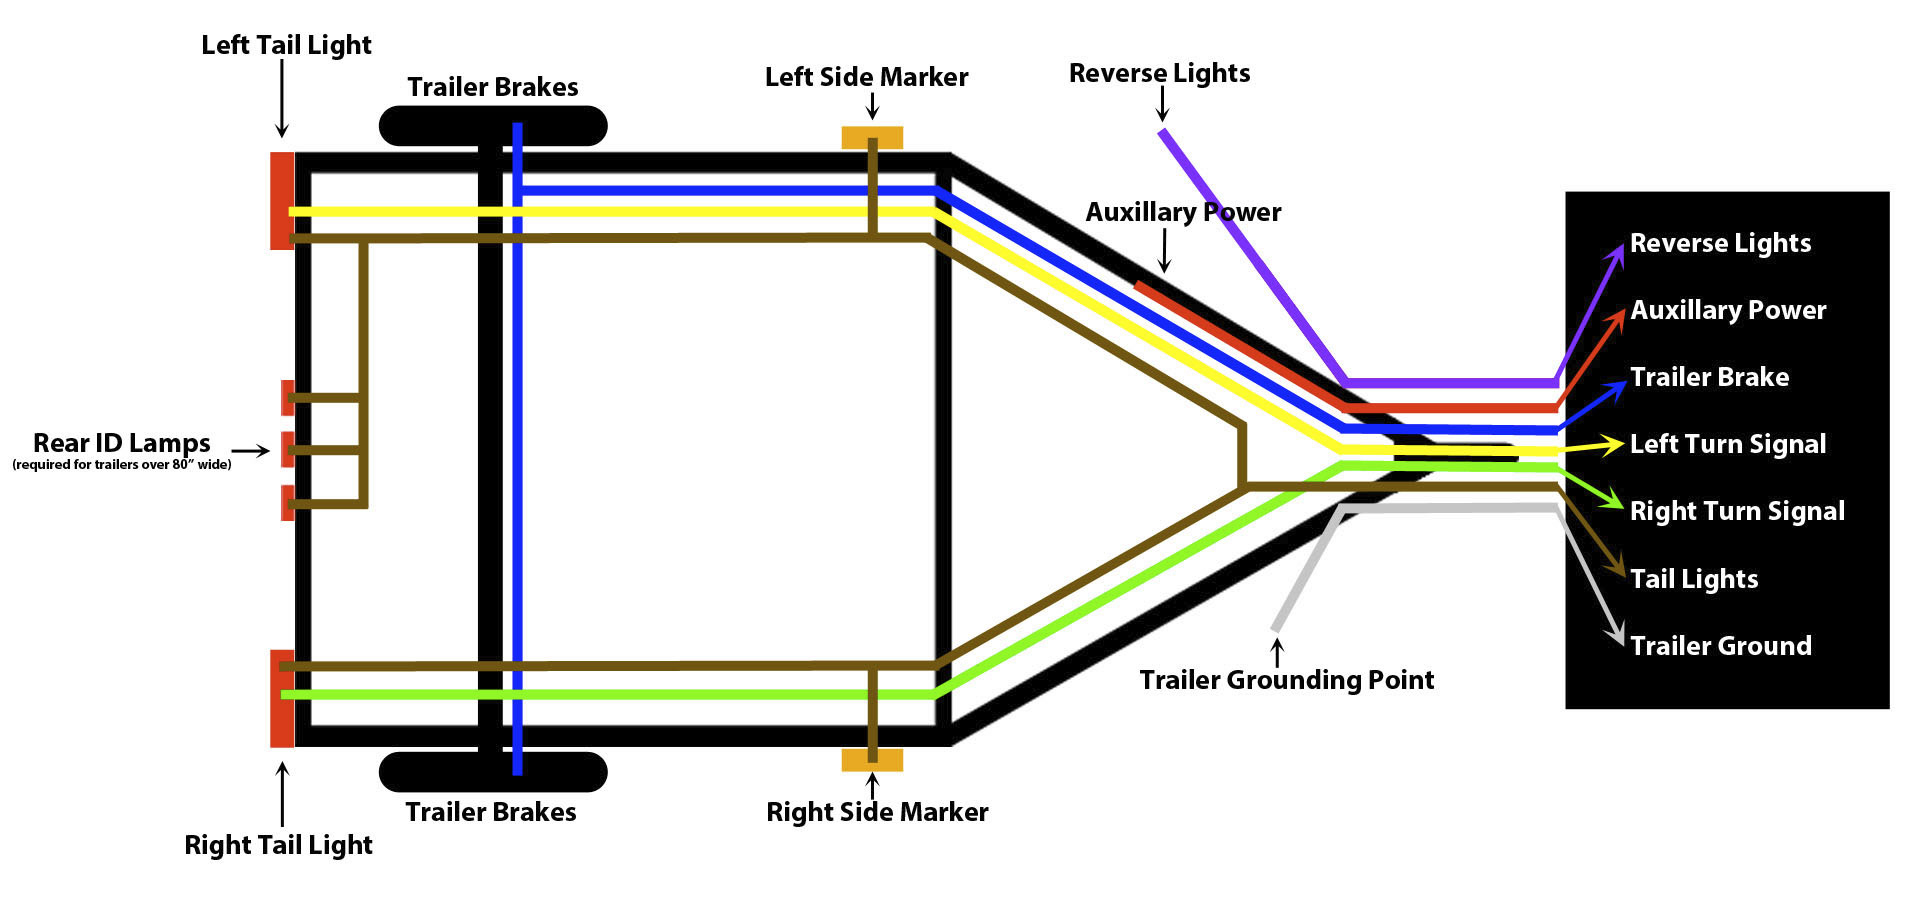 How To Wire Trailer Lights - Trailer Wiring Guide & Videos - 5 Way Trailer Wiring Diagram